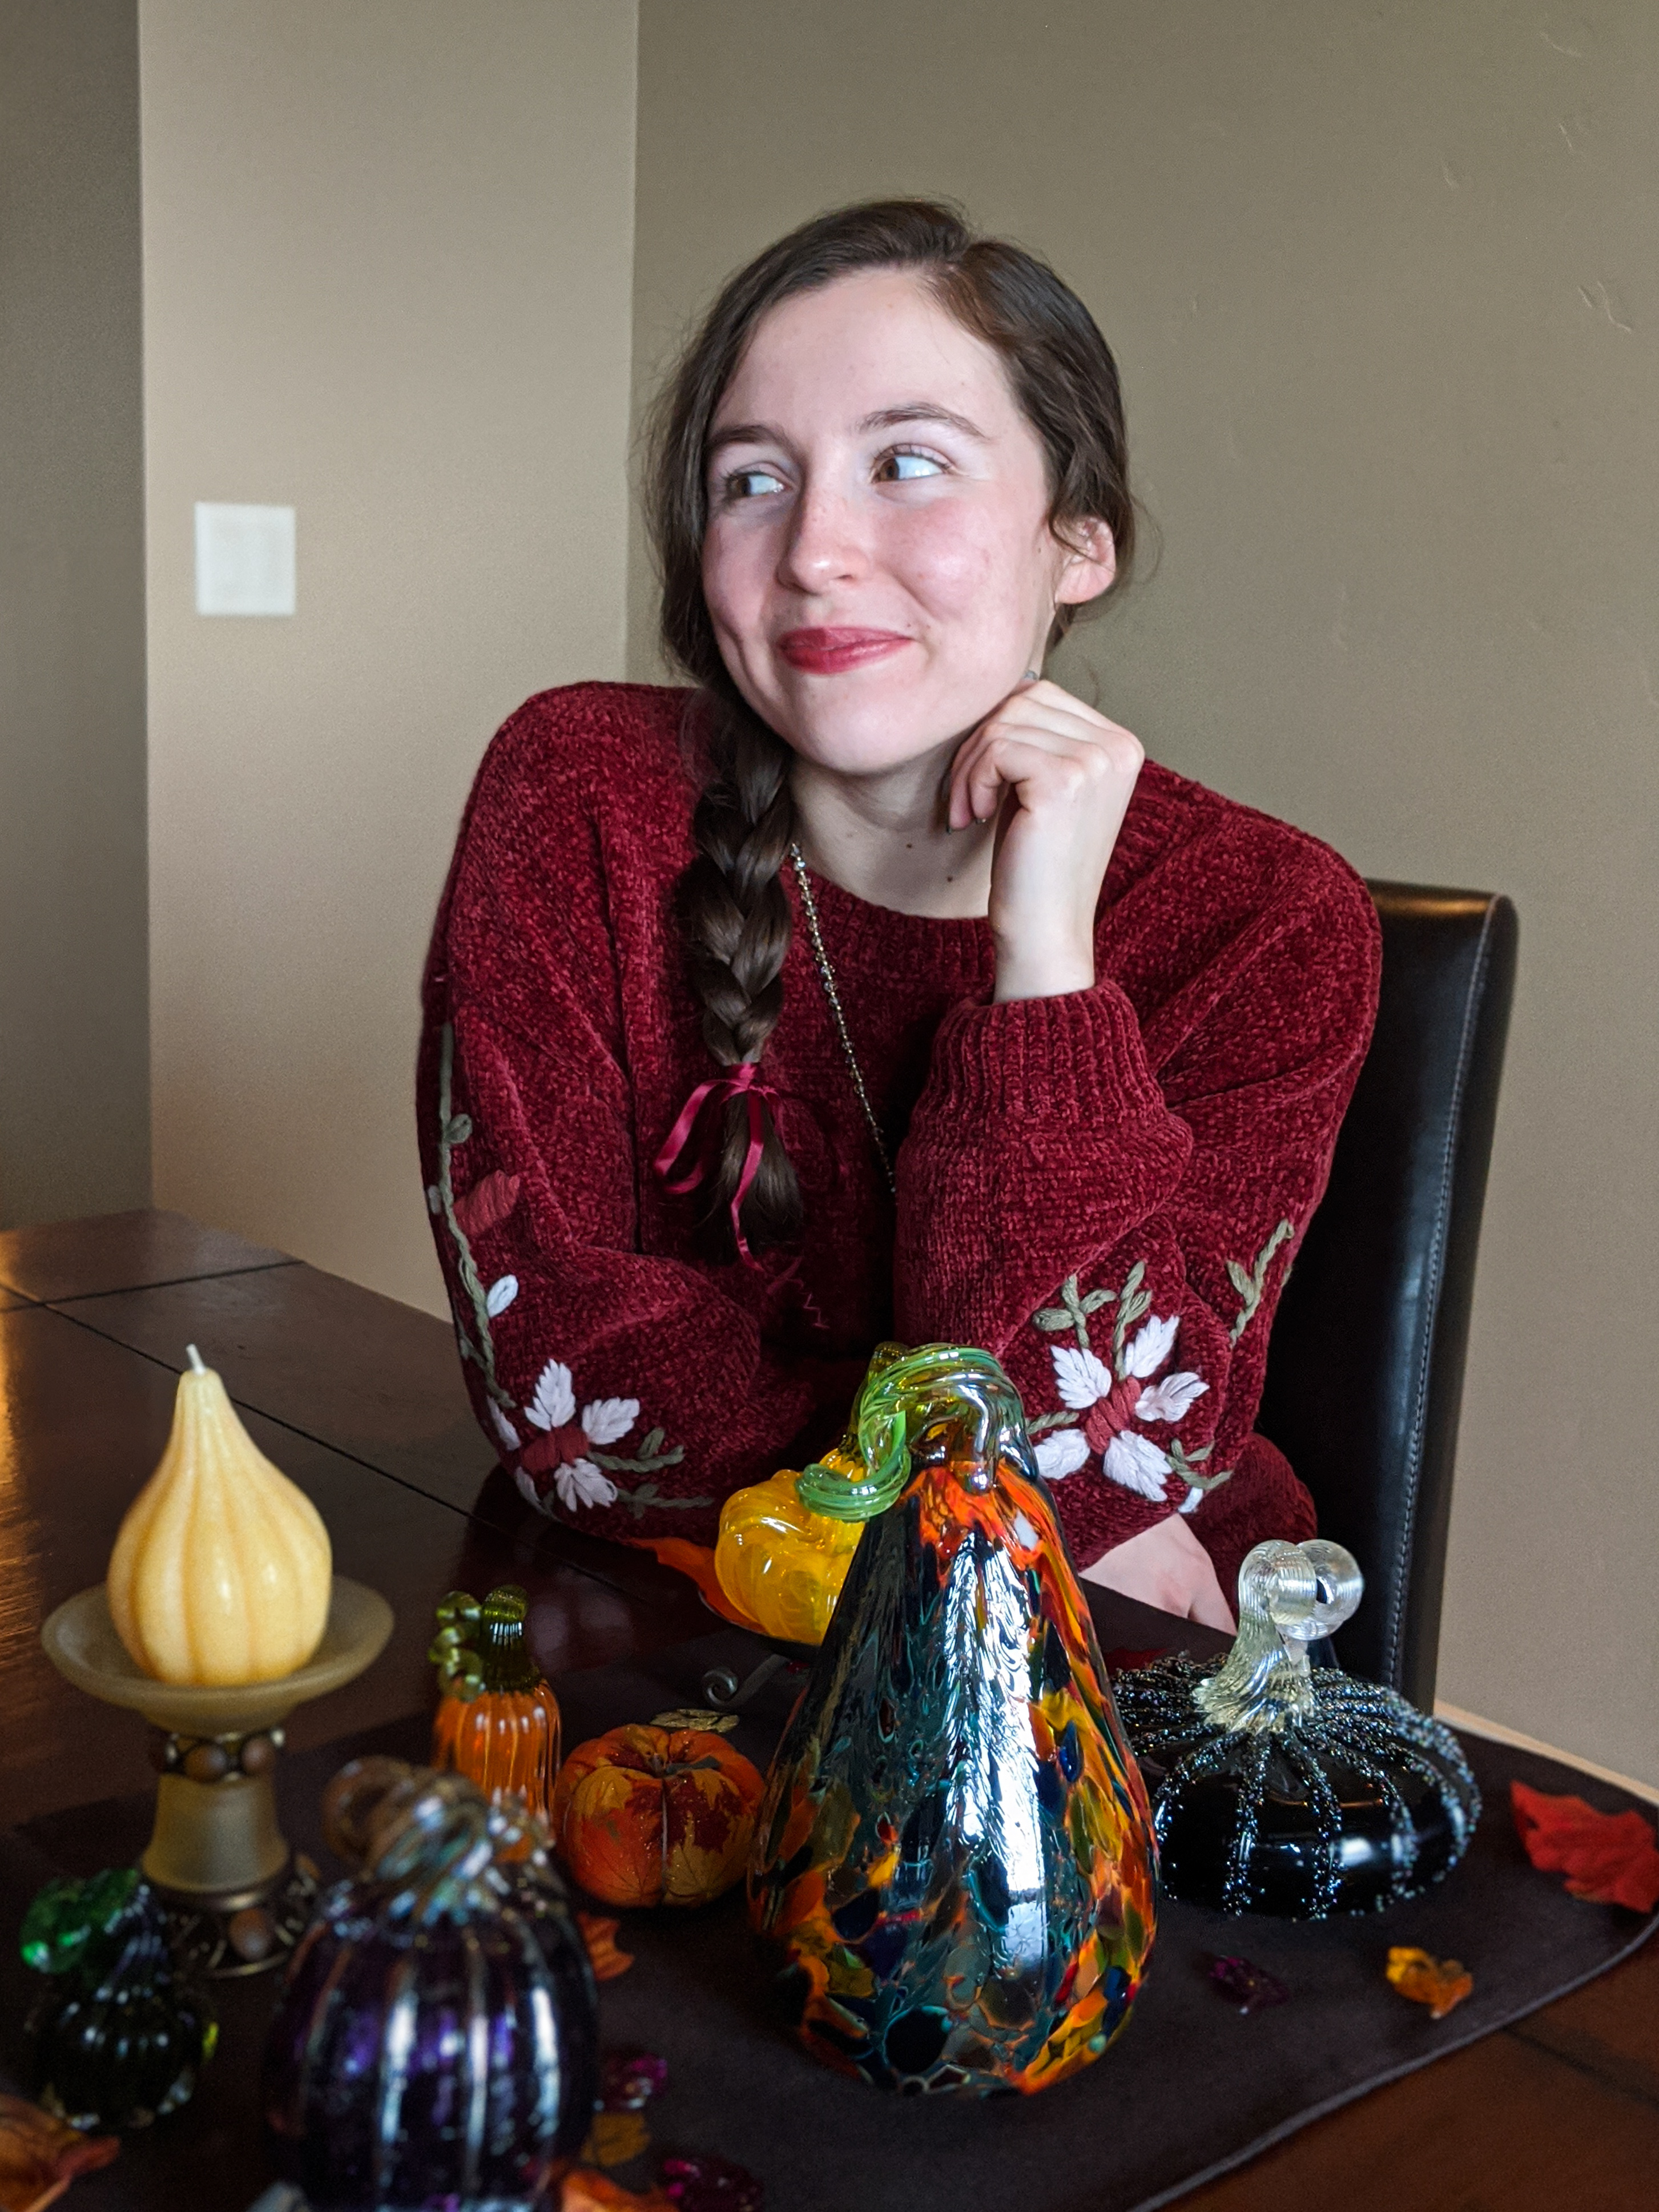 glass pumpkins, burgundy sweater, embroidered sweater